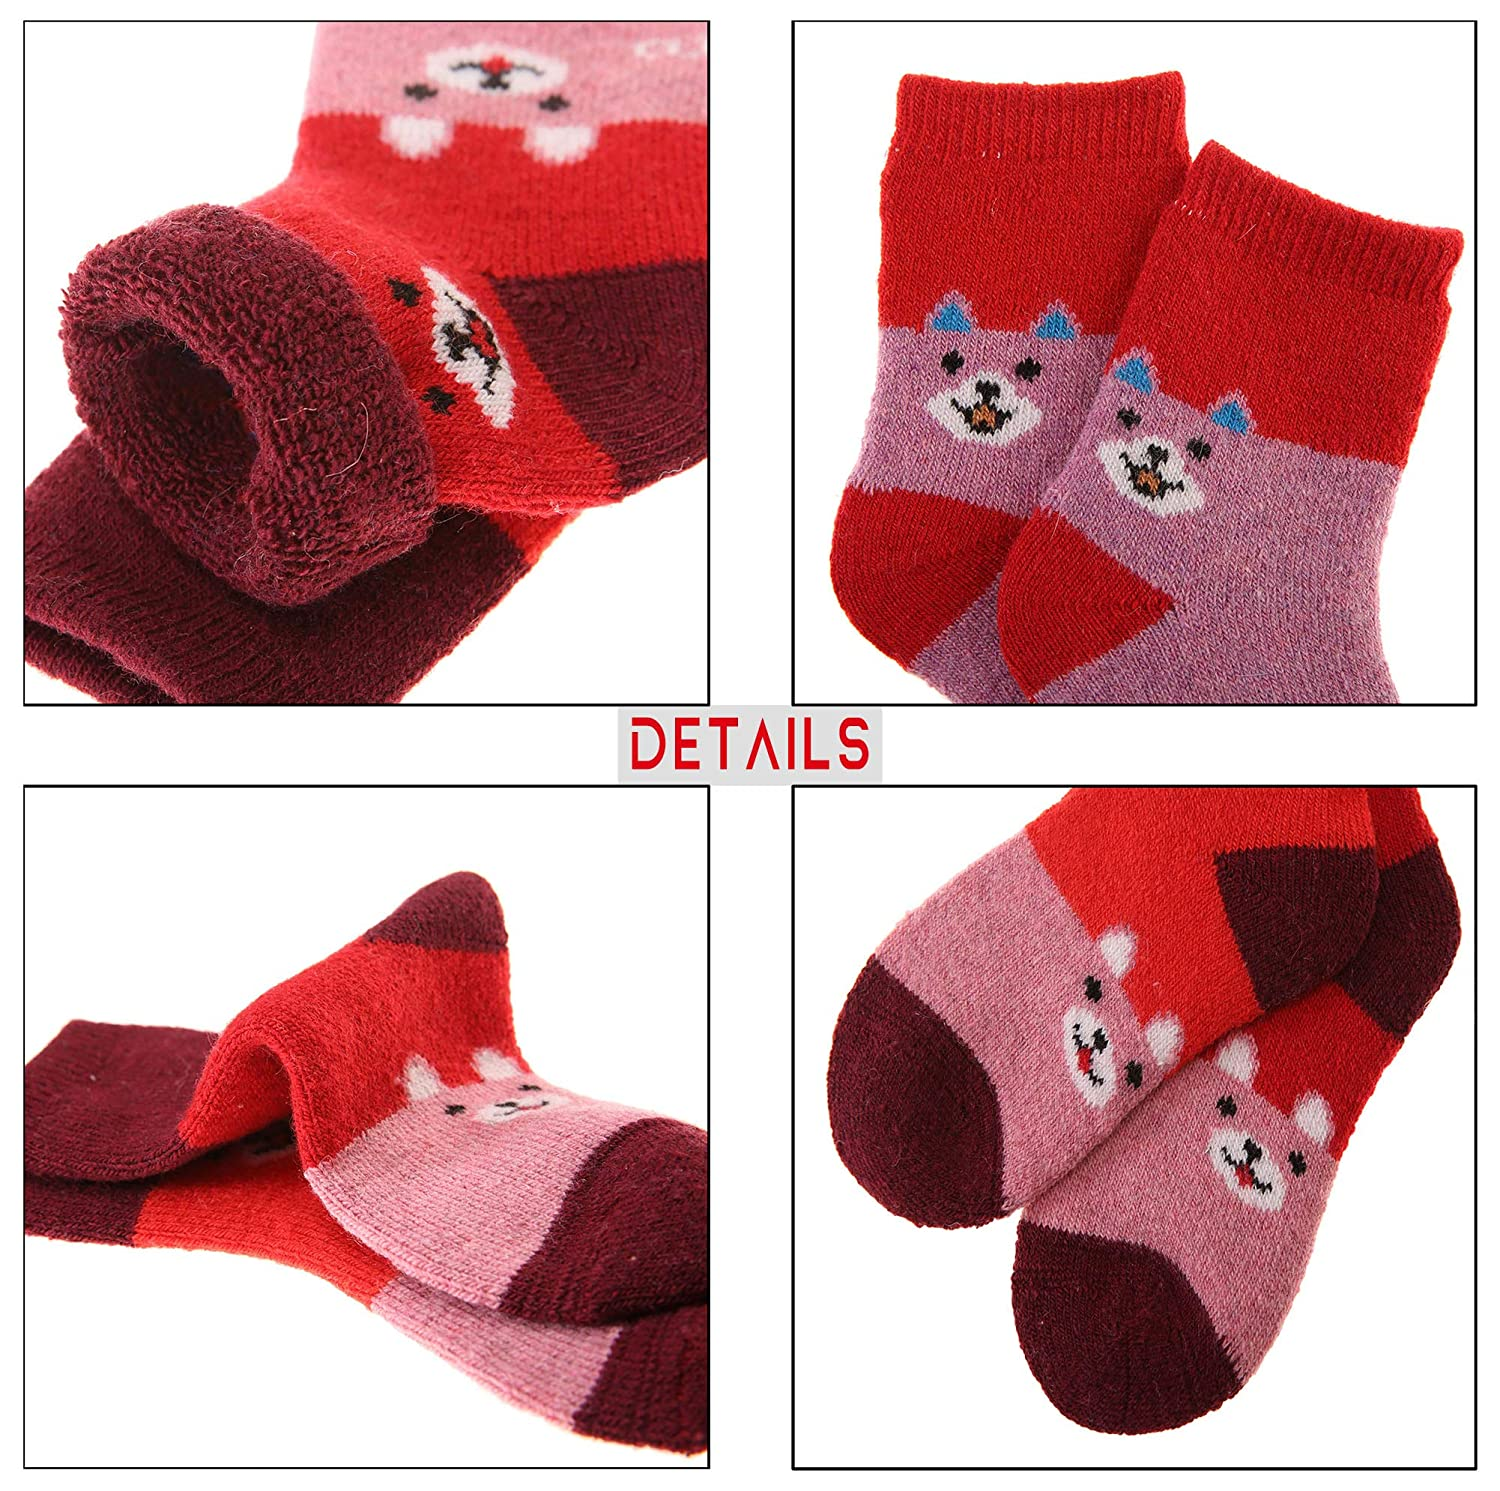 Children Soft Warm Thick Breathable Winter Socks Cute Animal Wool Kids Boy Girl Socks 6 Pairs